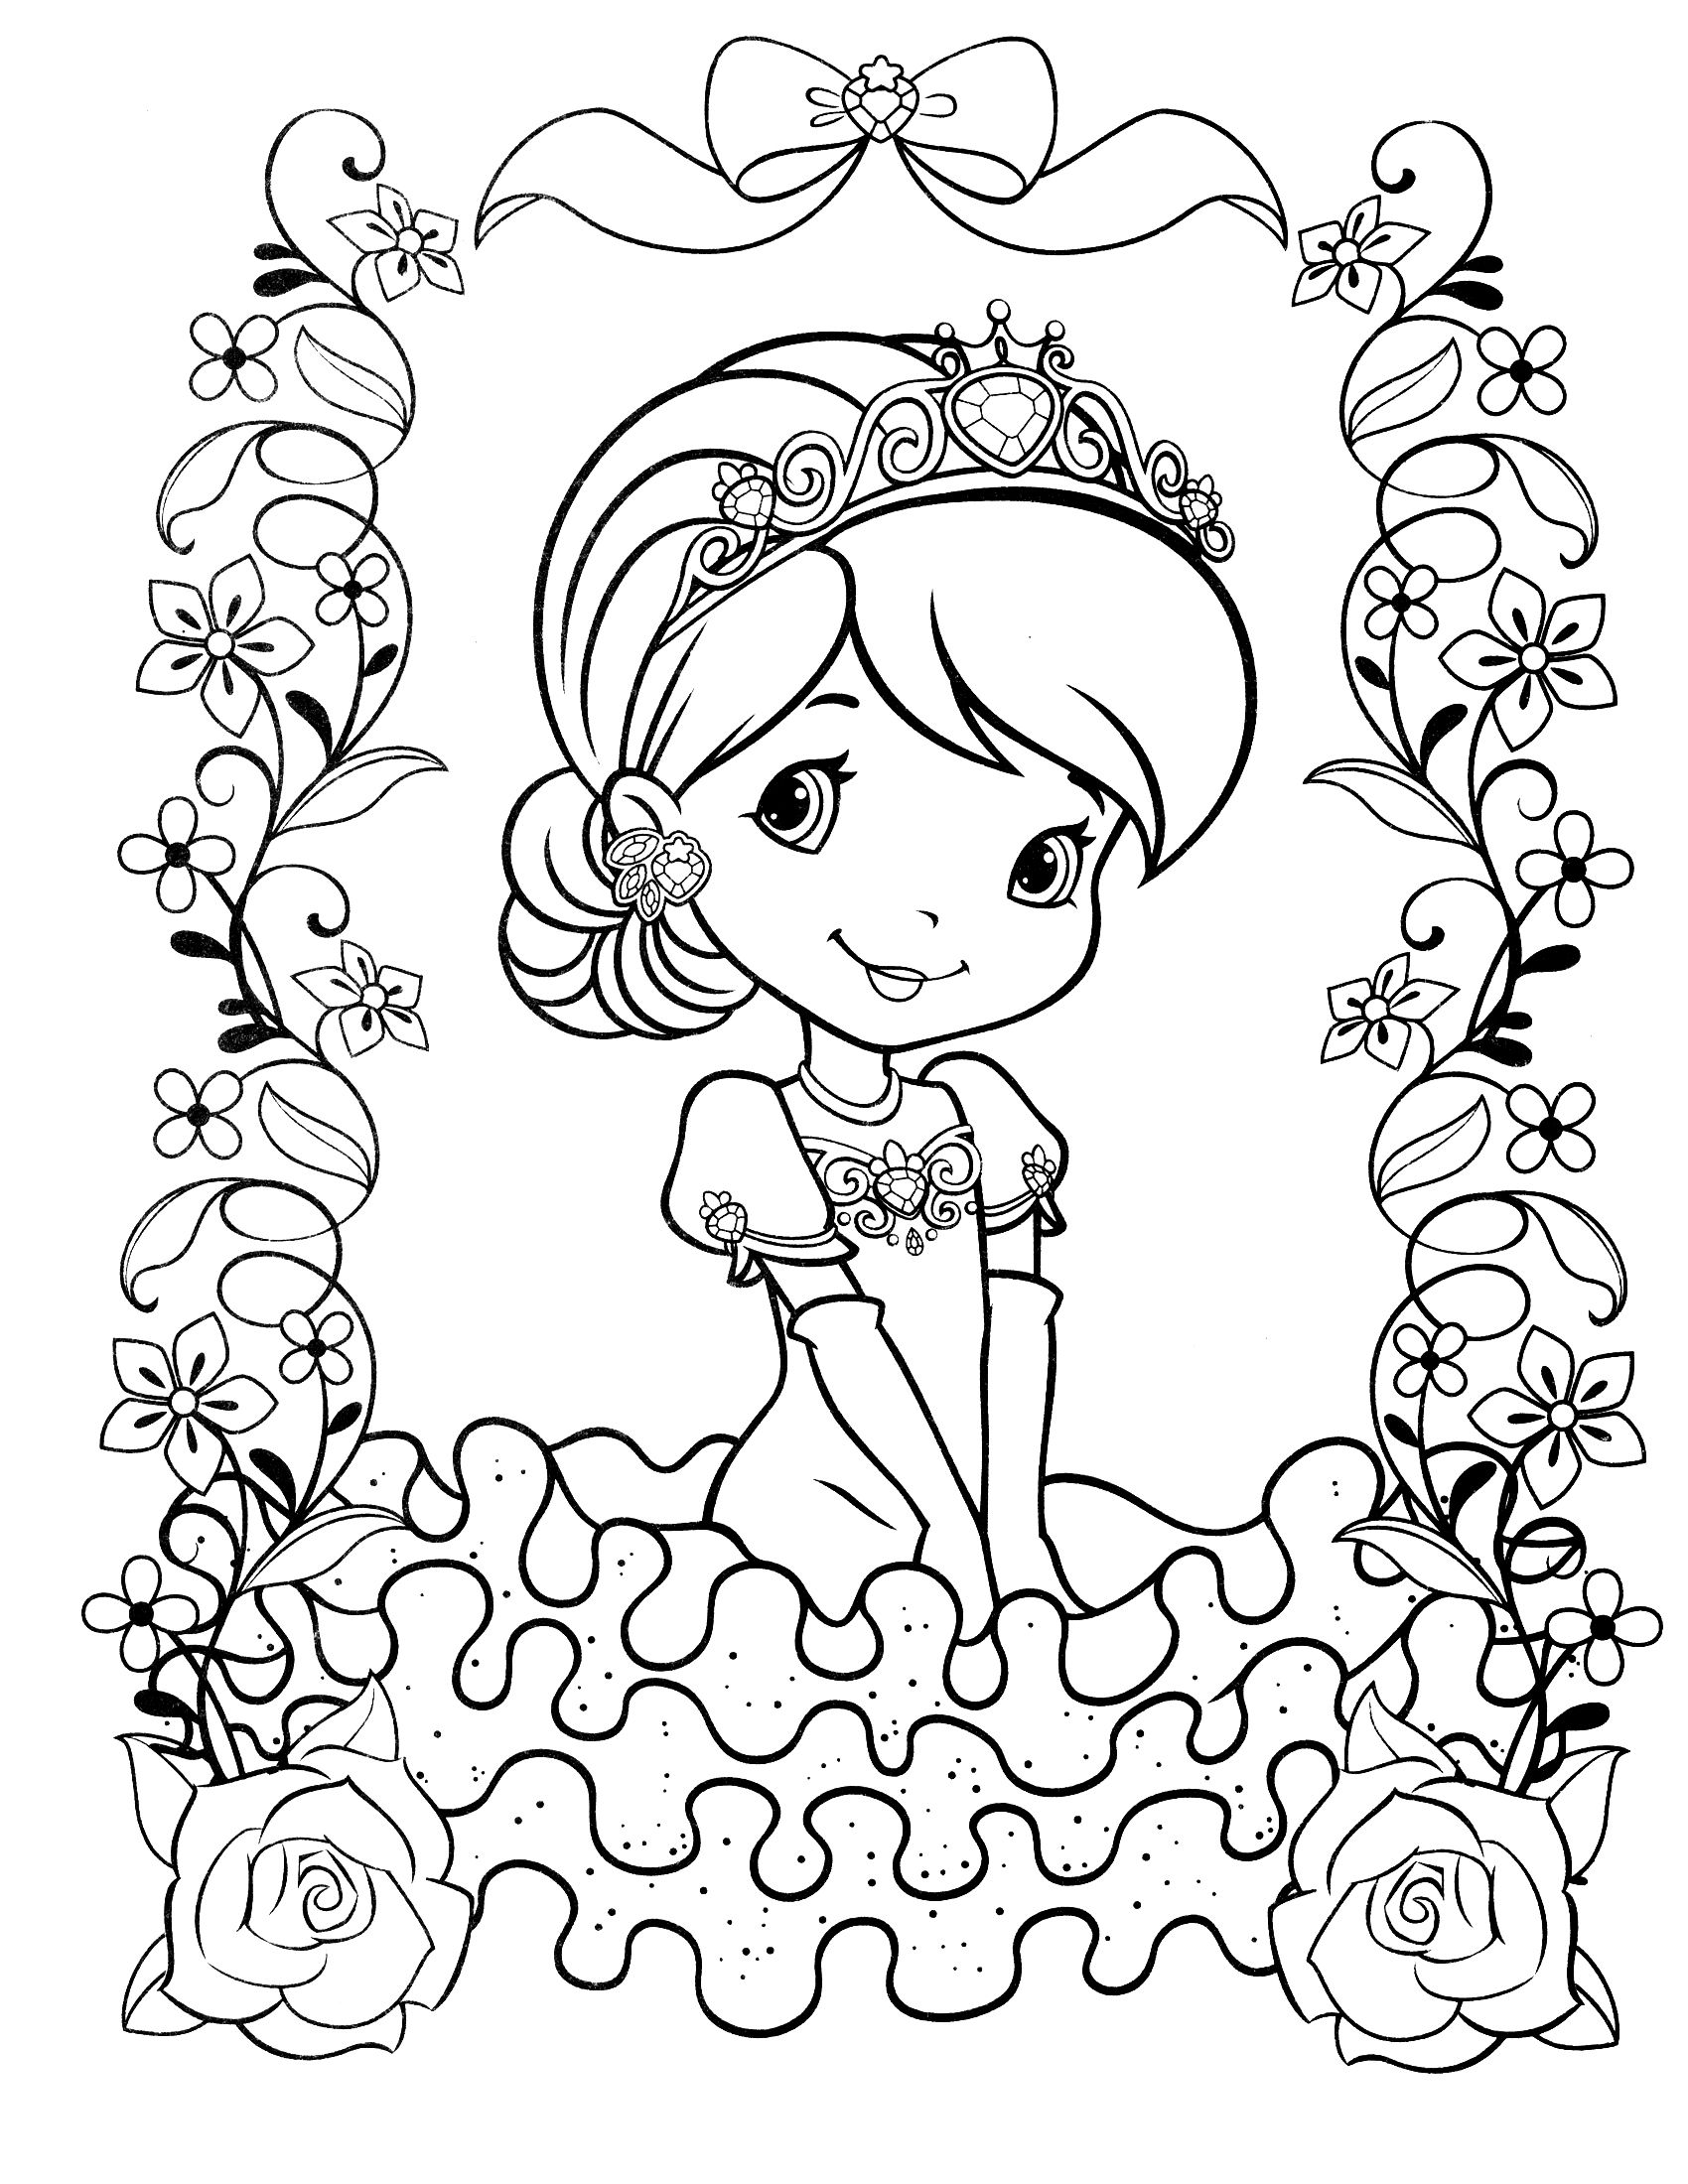 strawberry shortcake characters coloring pages strawberry shortcake strawberry shortcake coloring pages strawberry coloring shortcake characters pages